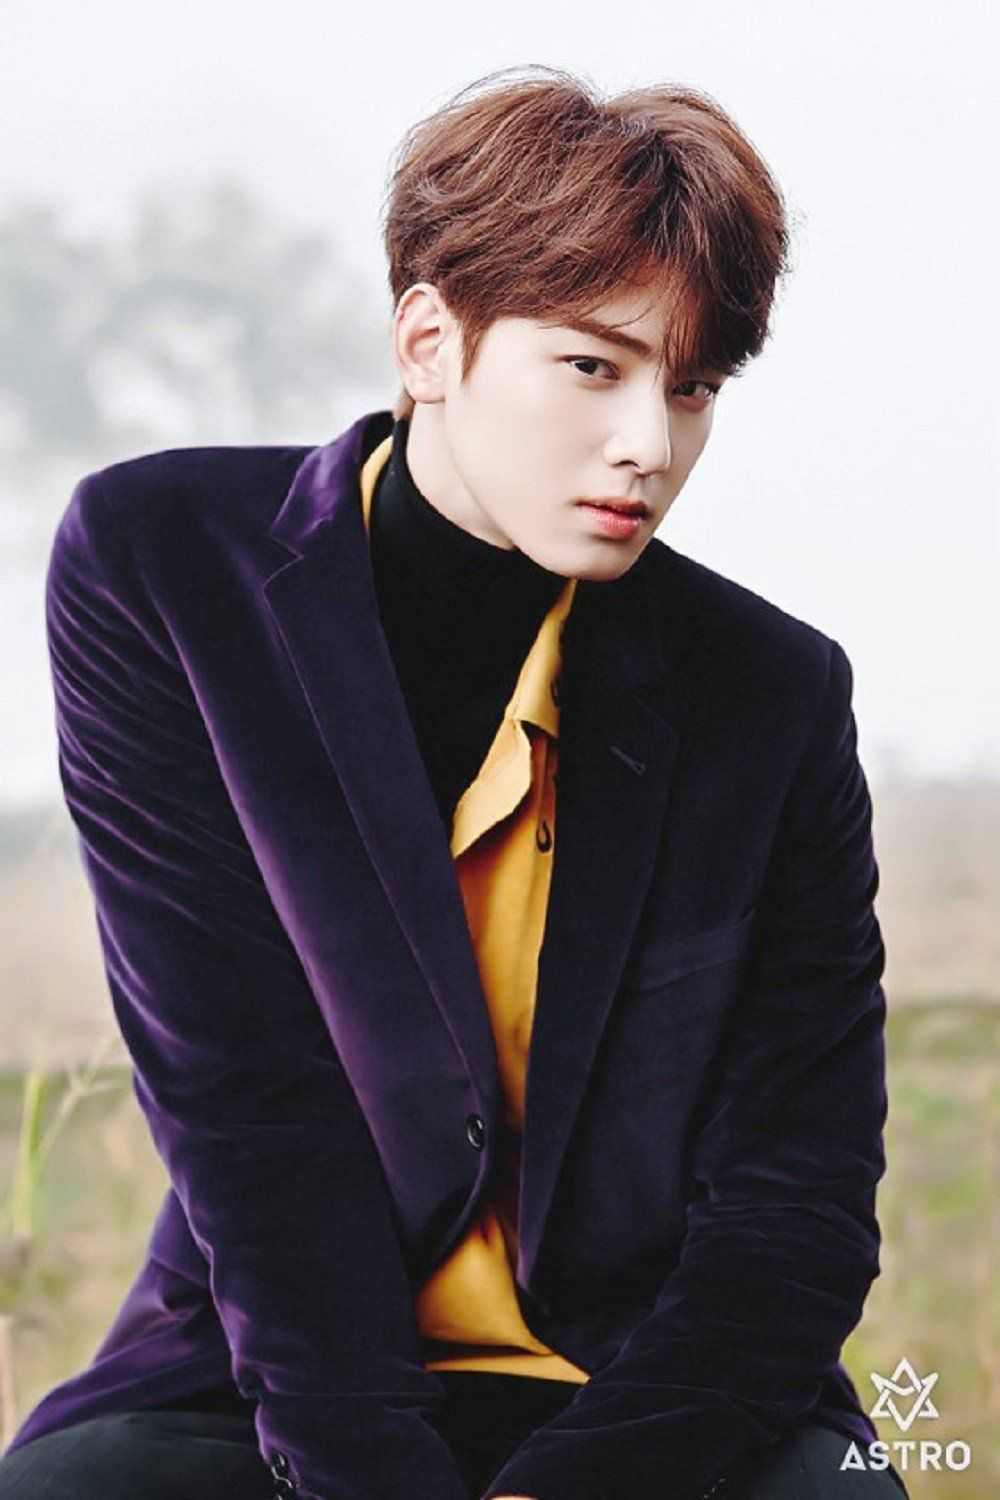 """Cha Eun Woo Astro tham gia webdrama """"Top Management"""" của Youtube Red (4)"""